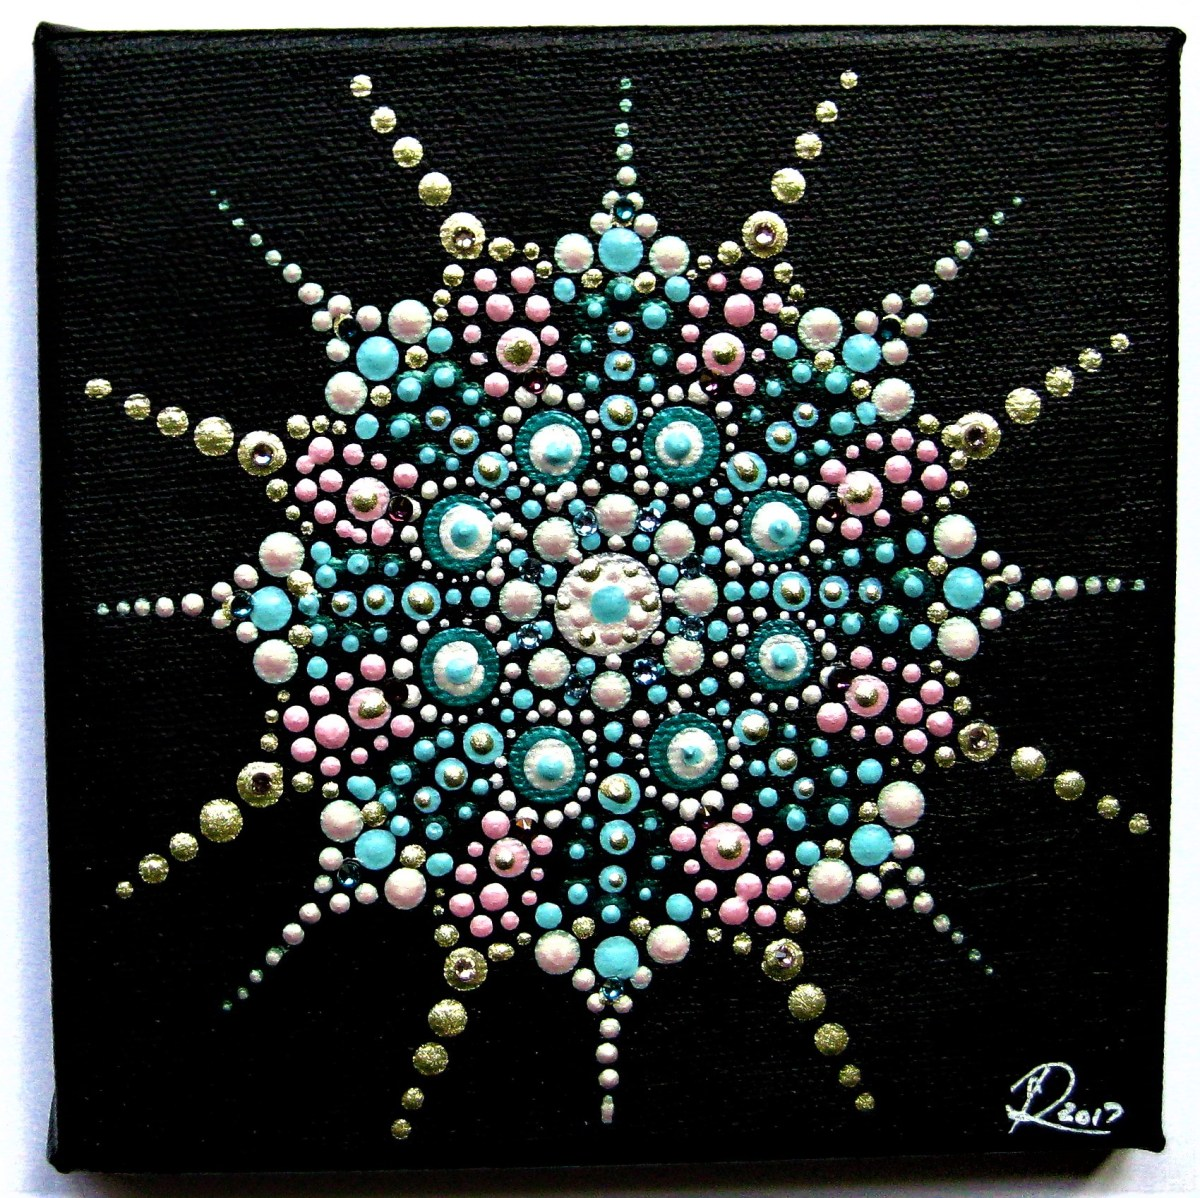 Dot Mandalas and Cyber Week everything SALE